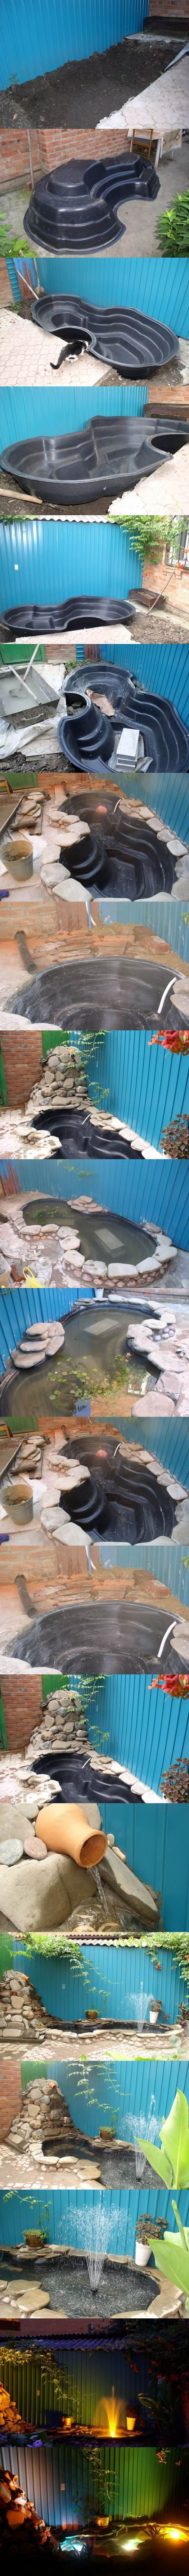 Easy Pond in Backyard 2 Wonderful DIY Amazing Garden Fish Pond